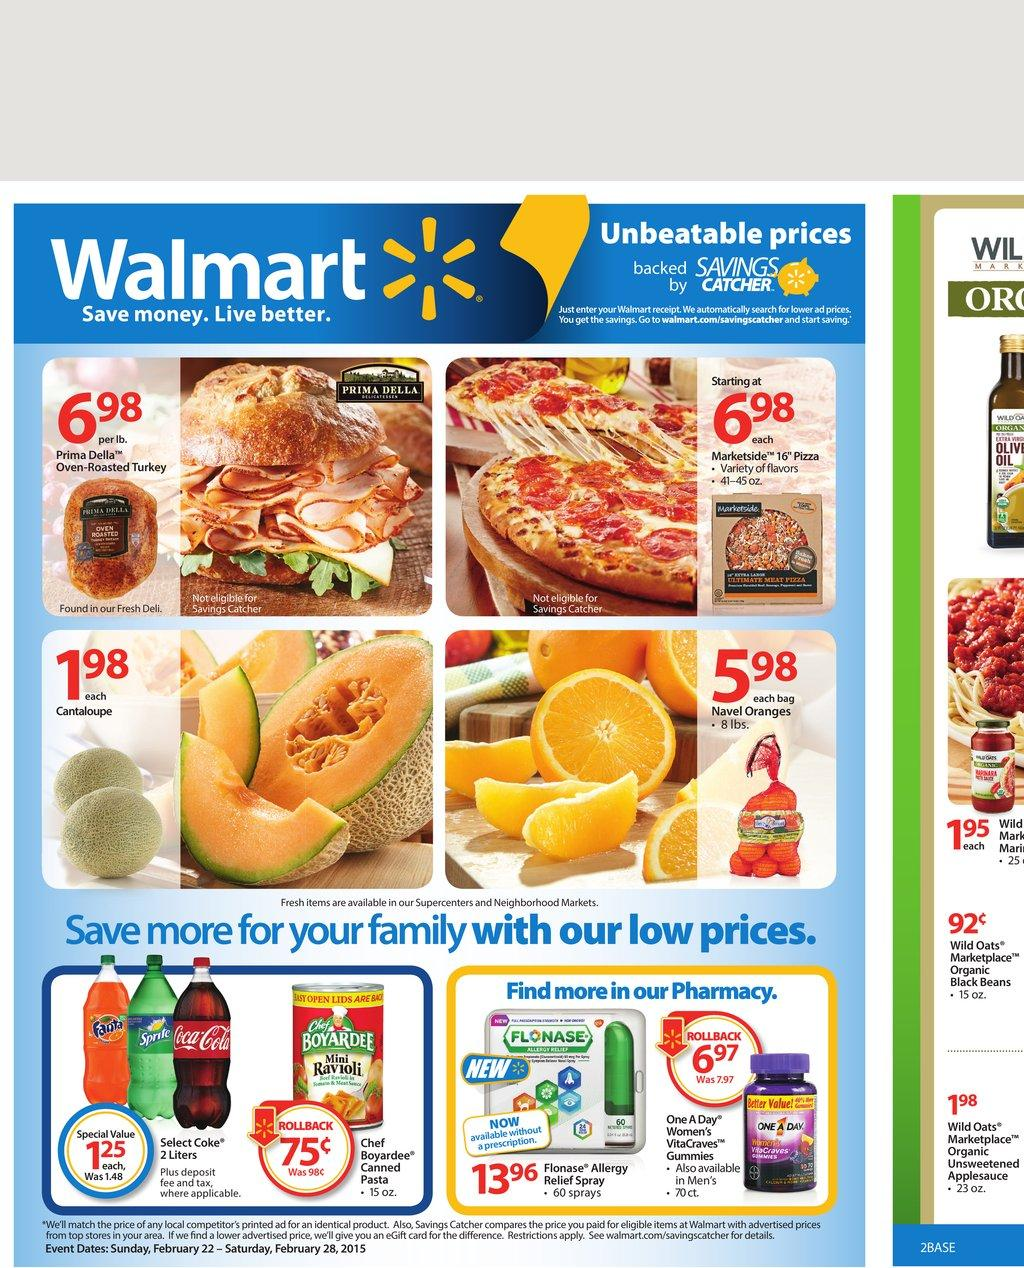 Walmart Black Friday Deals. Save up to 3% when you use the retailer credit card to pay the purchases, including 3% for online purchases and grocery pickup, 2% on Murphy USA & Walmart gas and 1% for in-store shopping and anywhere your card is accepted. Also, save $25 when you open the Credit Card and spend $25 in the same day. No annual fee.